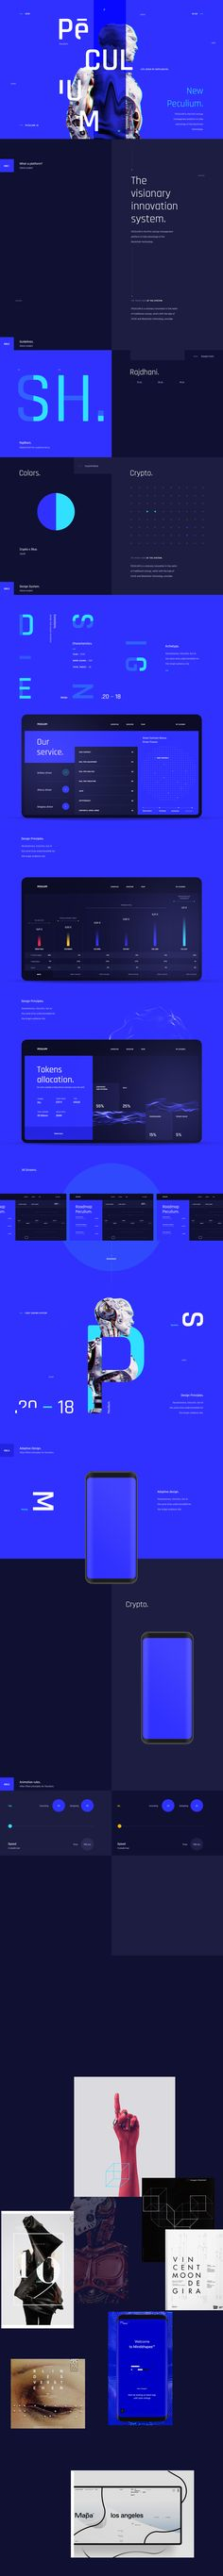 "Check out this @Behance project: ""Peculium: Automatic Machine Learning Crypto Management"" https://www.behance.net/gallery/62631127/Peculium-Automatic-Machine-Learning-Crypto-Management"